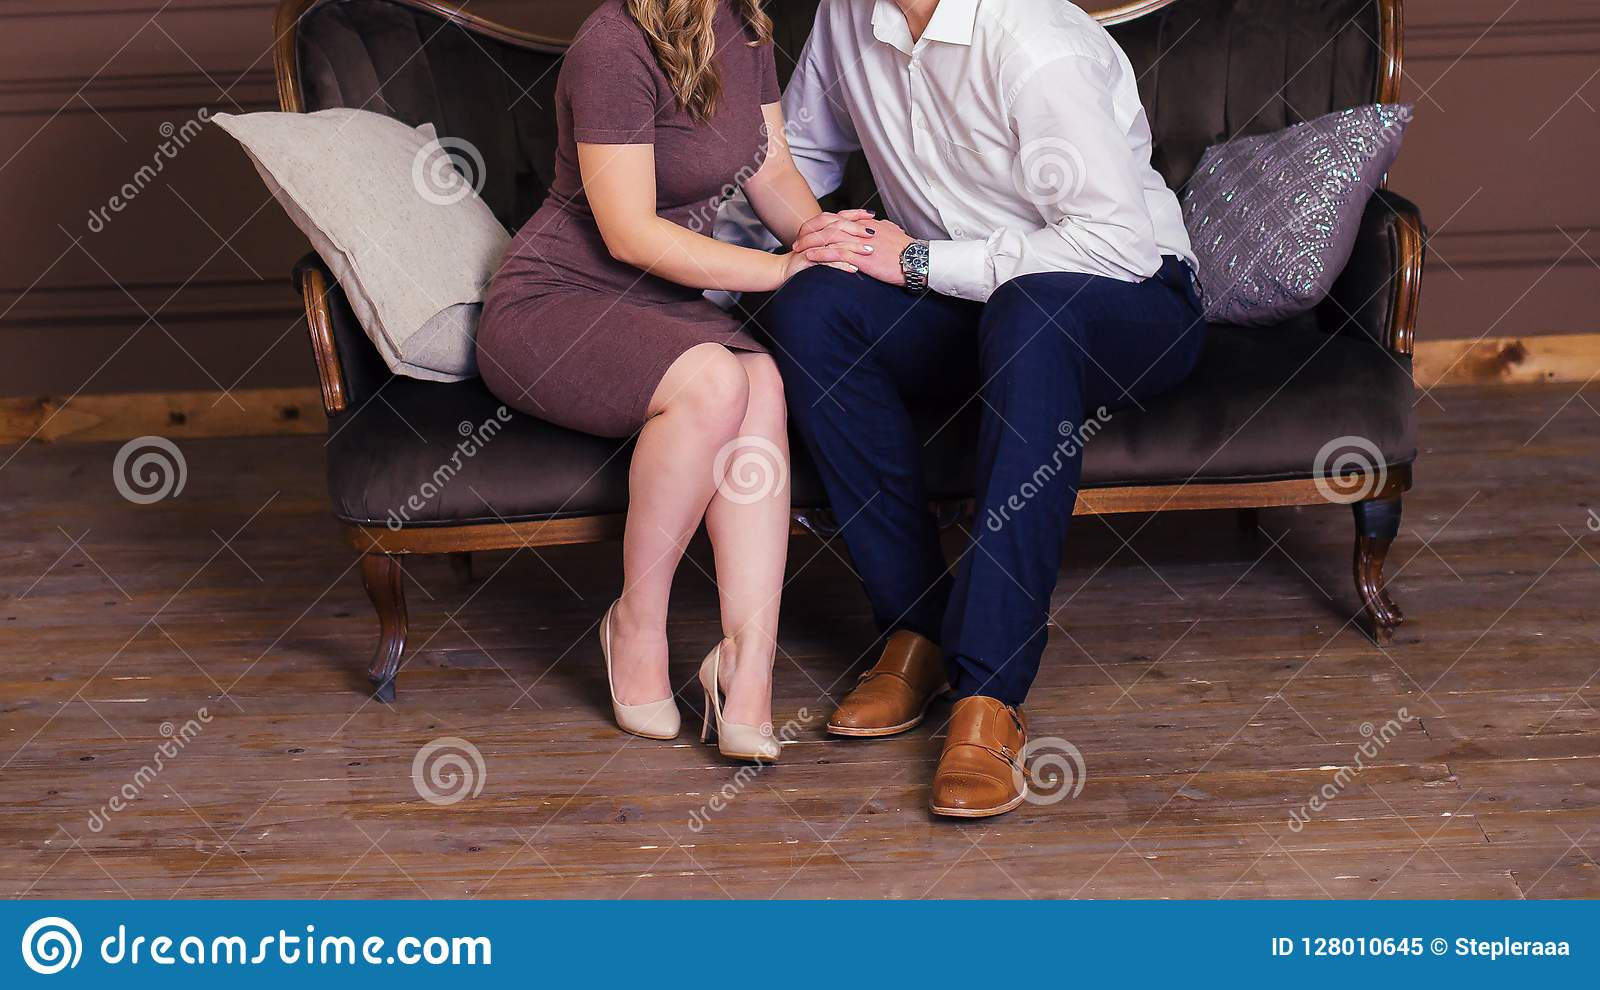 The girl and the boy in love are sitting on a luxurious couch in